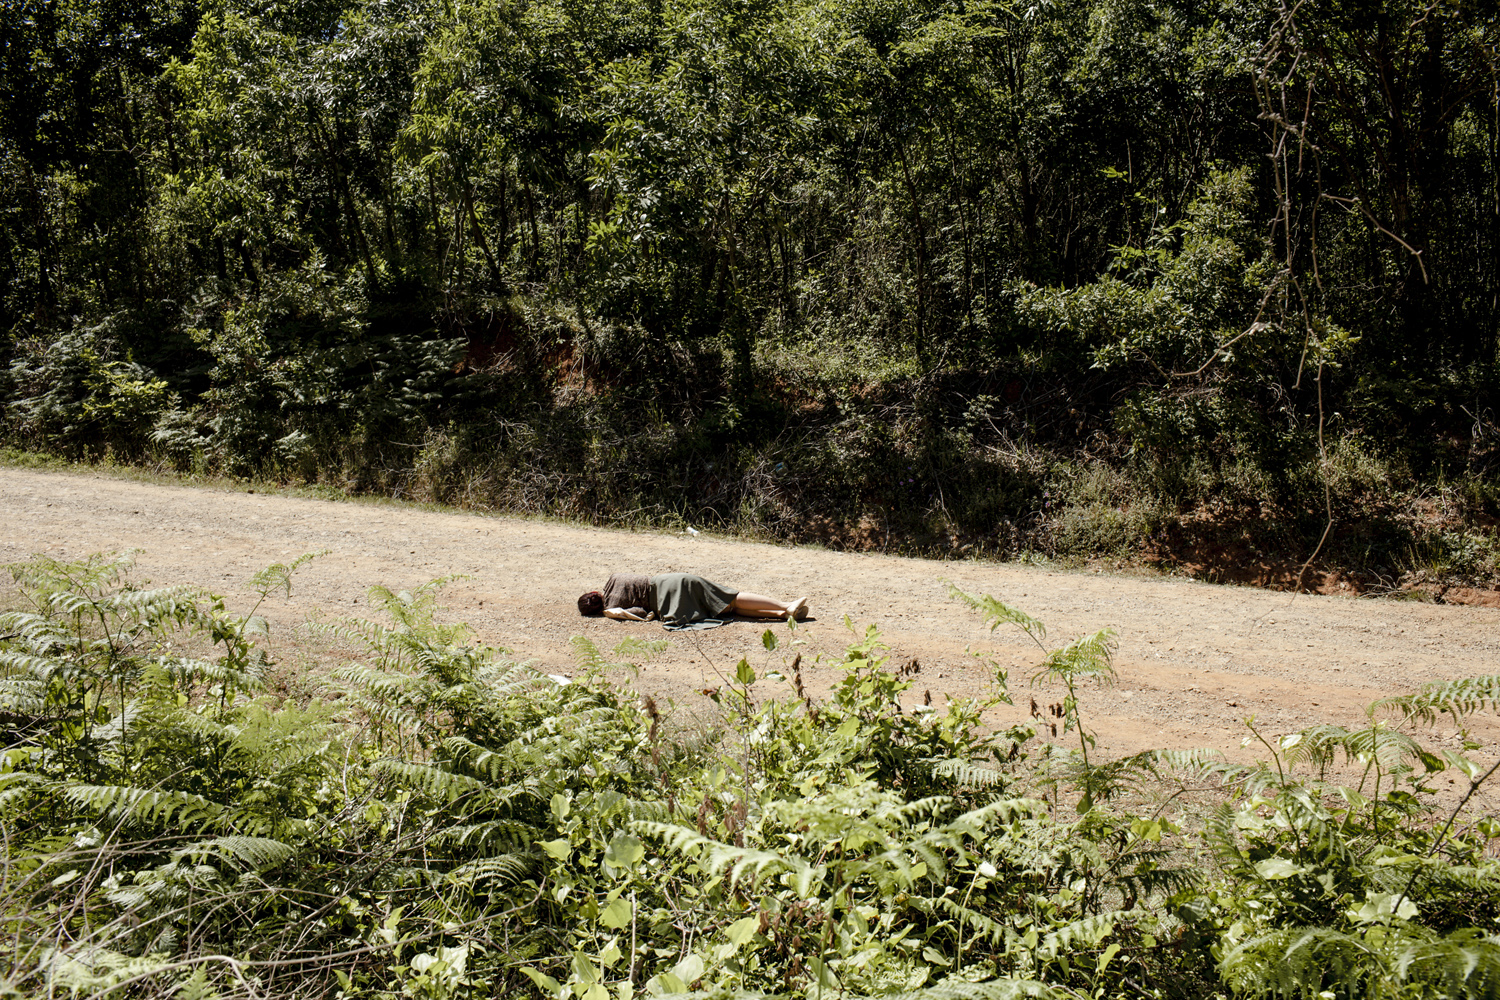 A murder scene, outskirts of Istanbul, May 2013.